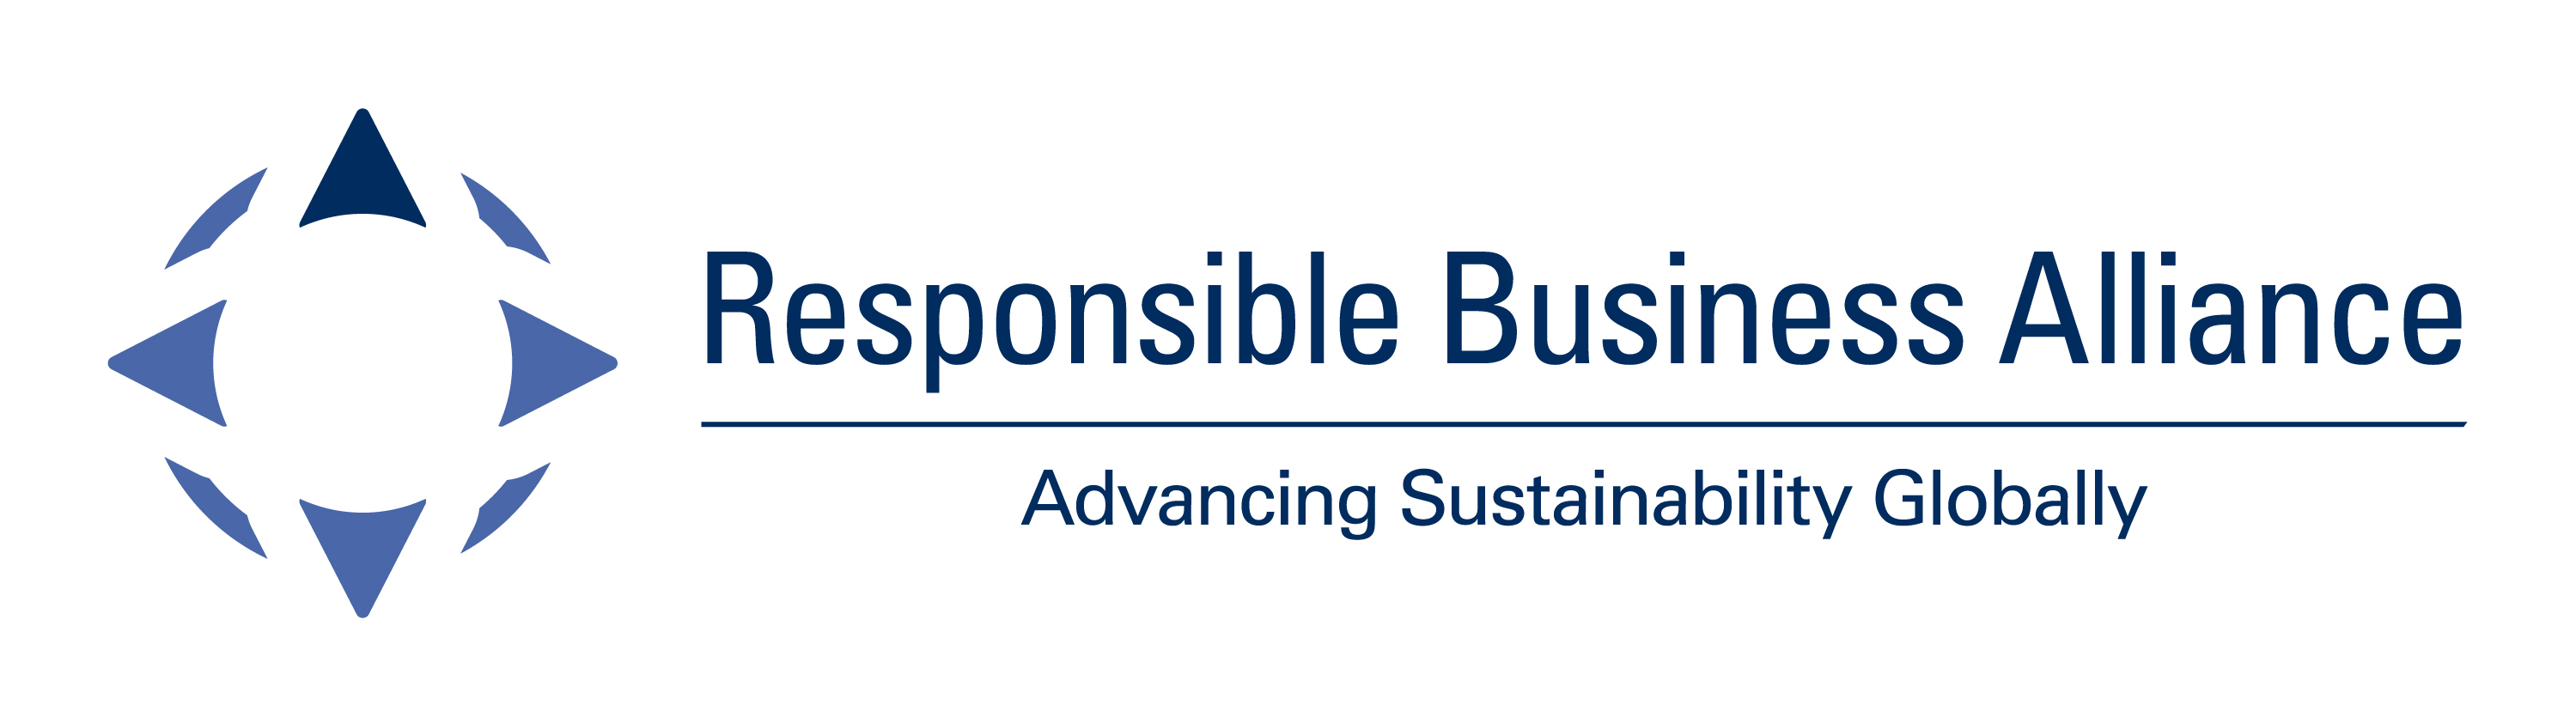 Microchip Joins Responsible Business Alliance